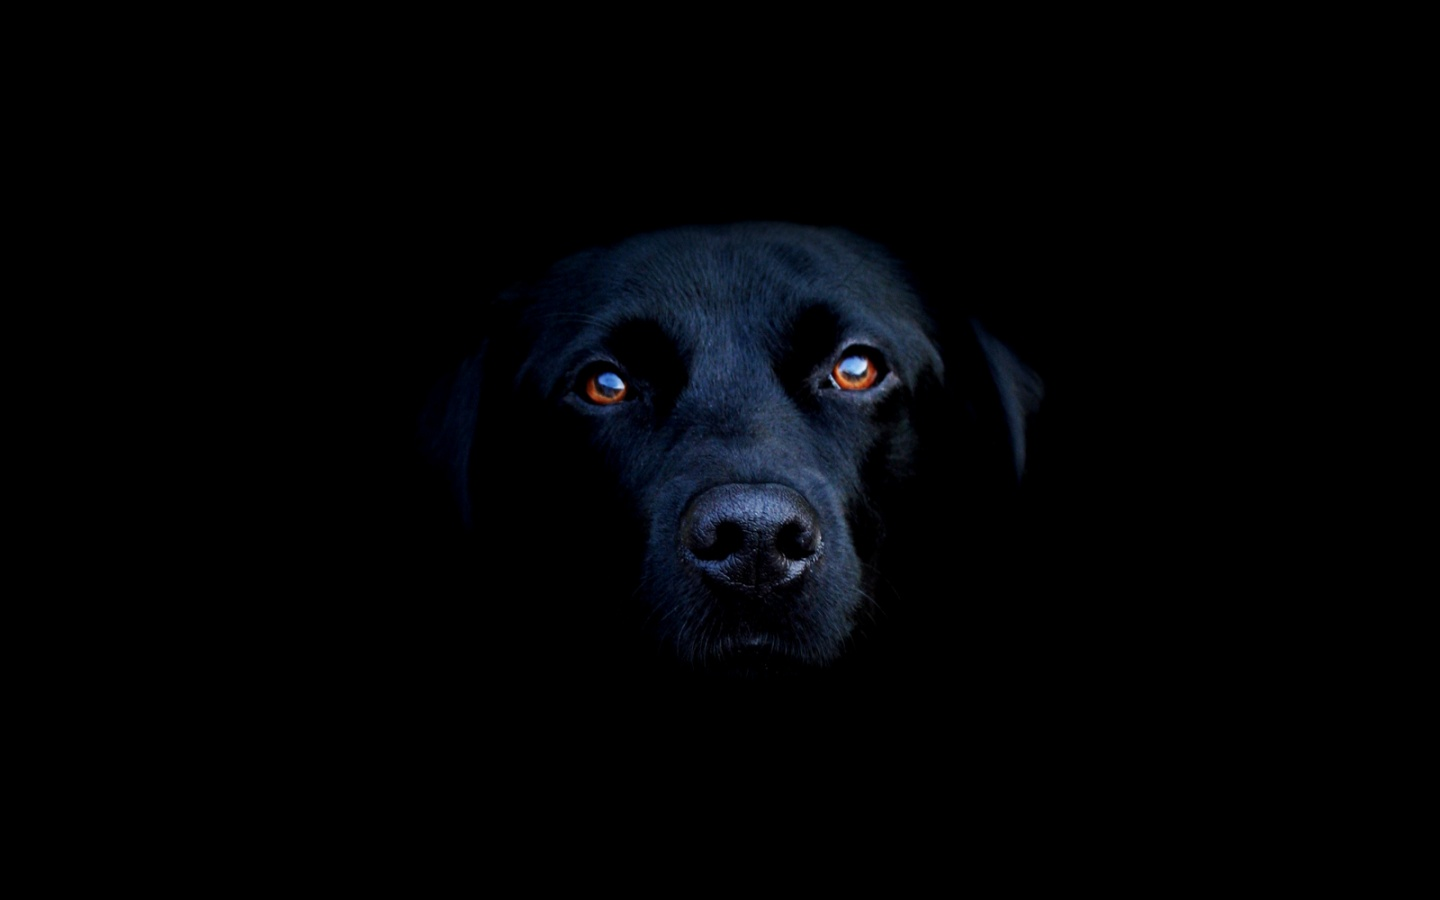 The eyes of dogs contain a special membrane, called the tapetum lucidum, which permits them to see in the dark.